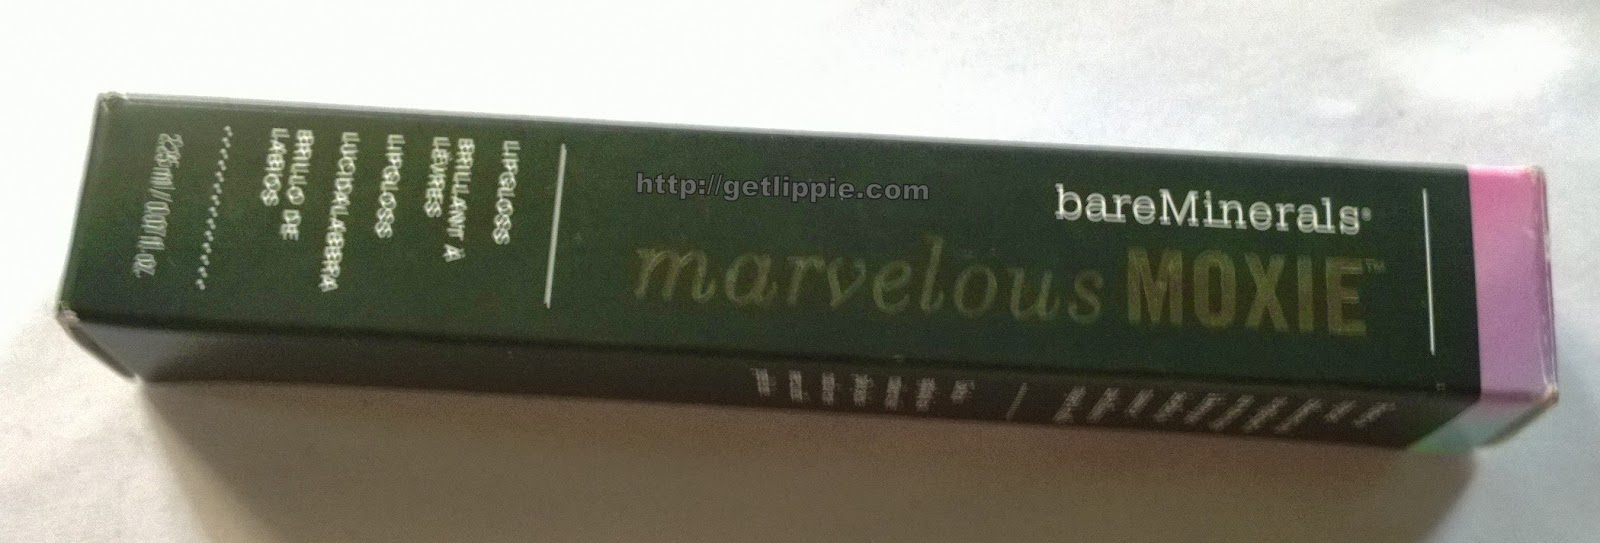 Bare Mineral Marvelous Moxie Lipgloss in Hypnotic - Get Lippie